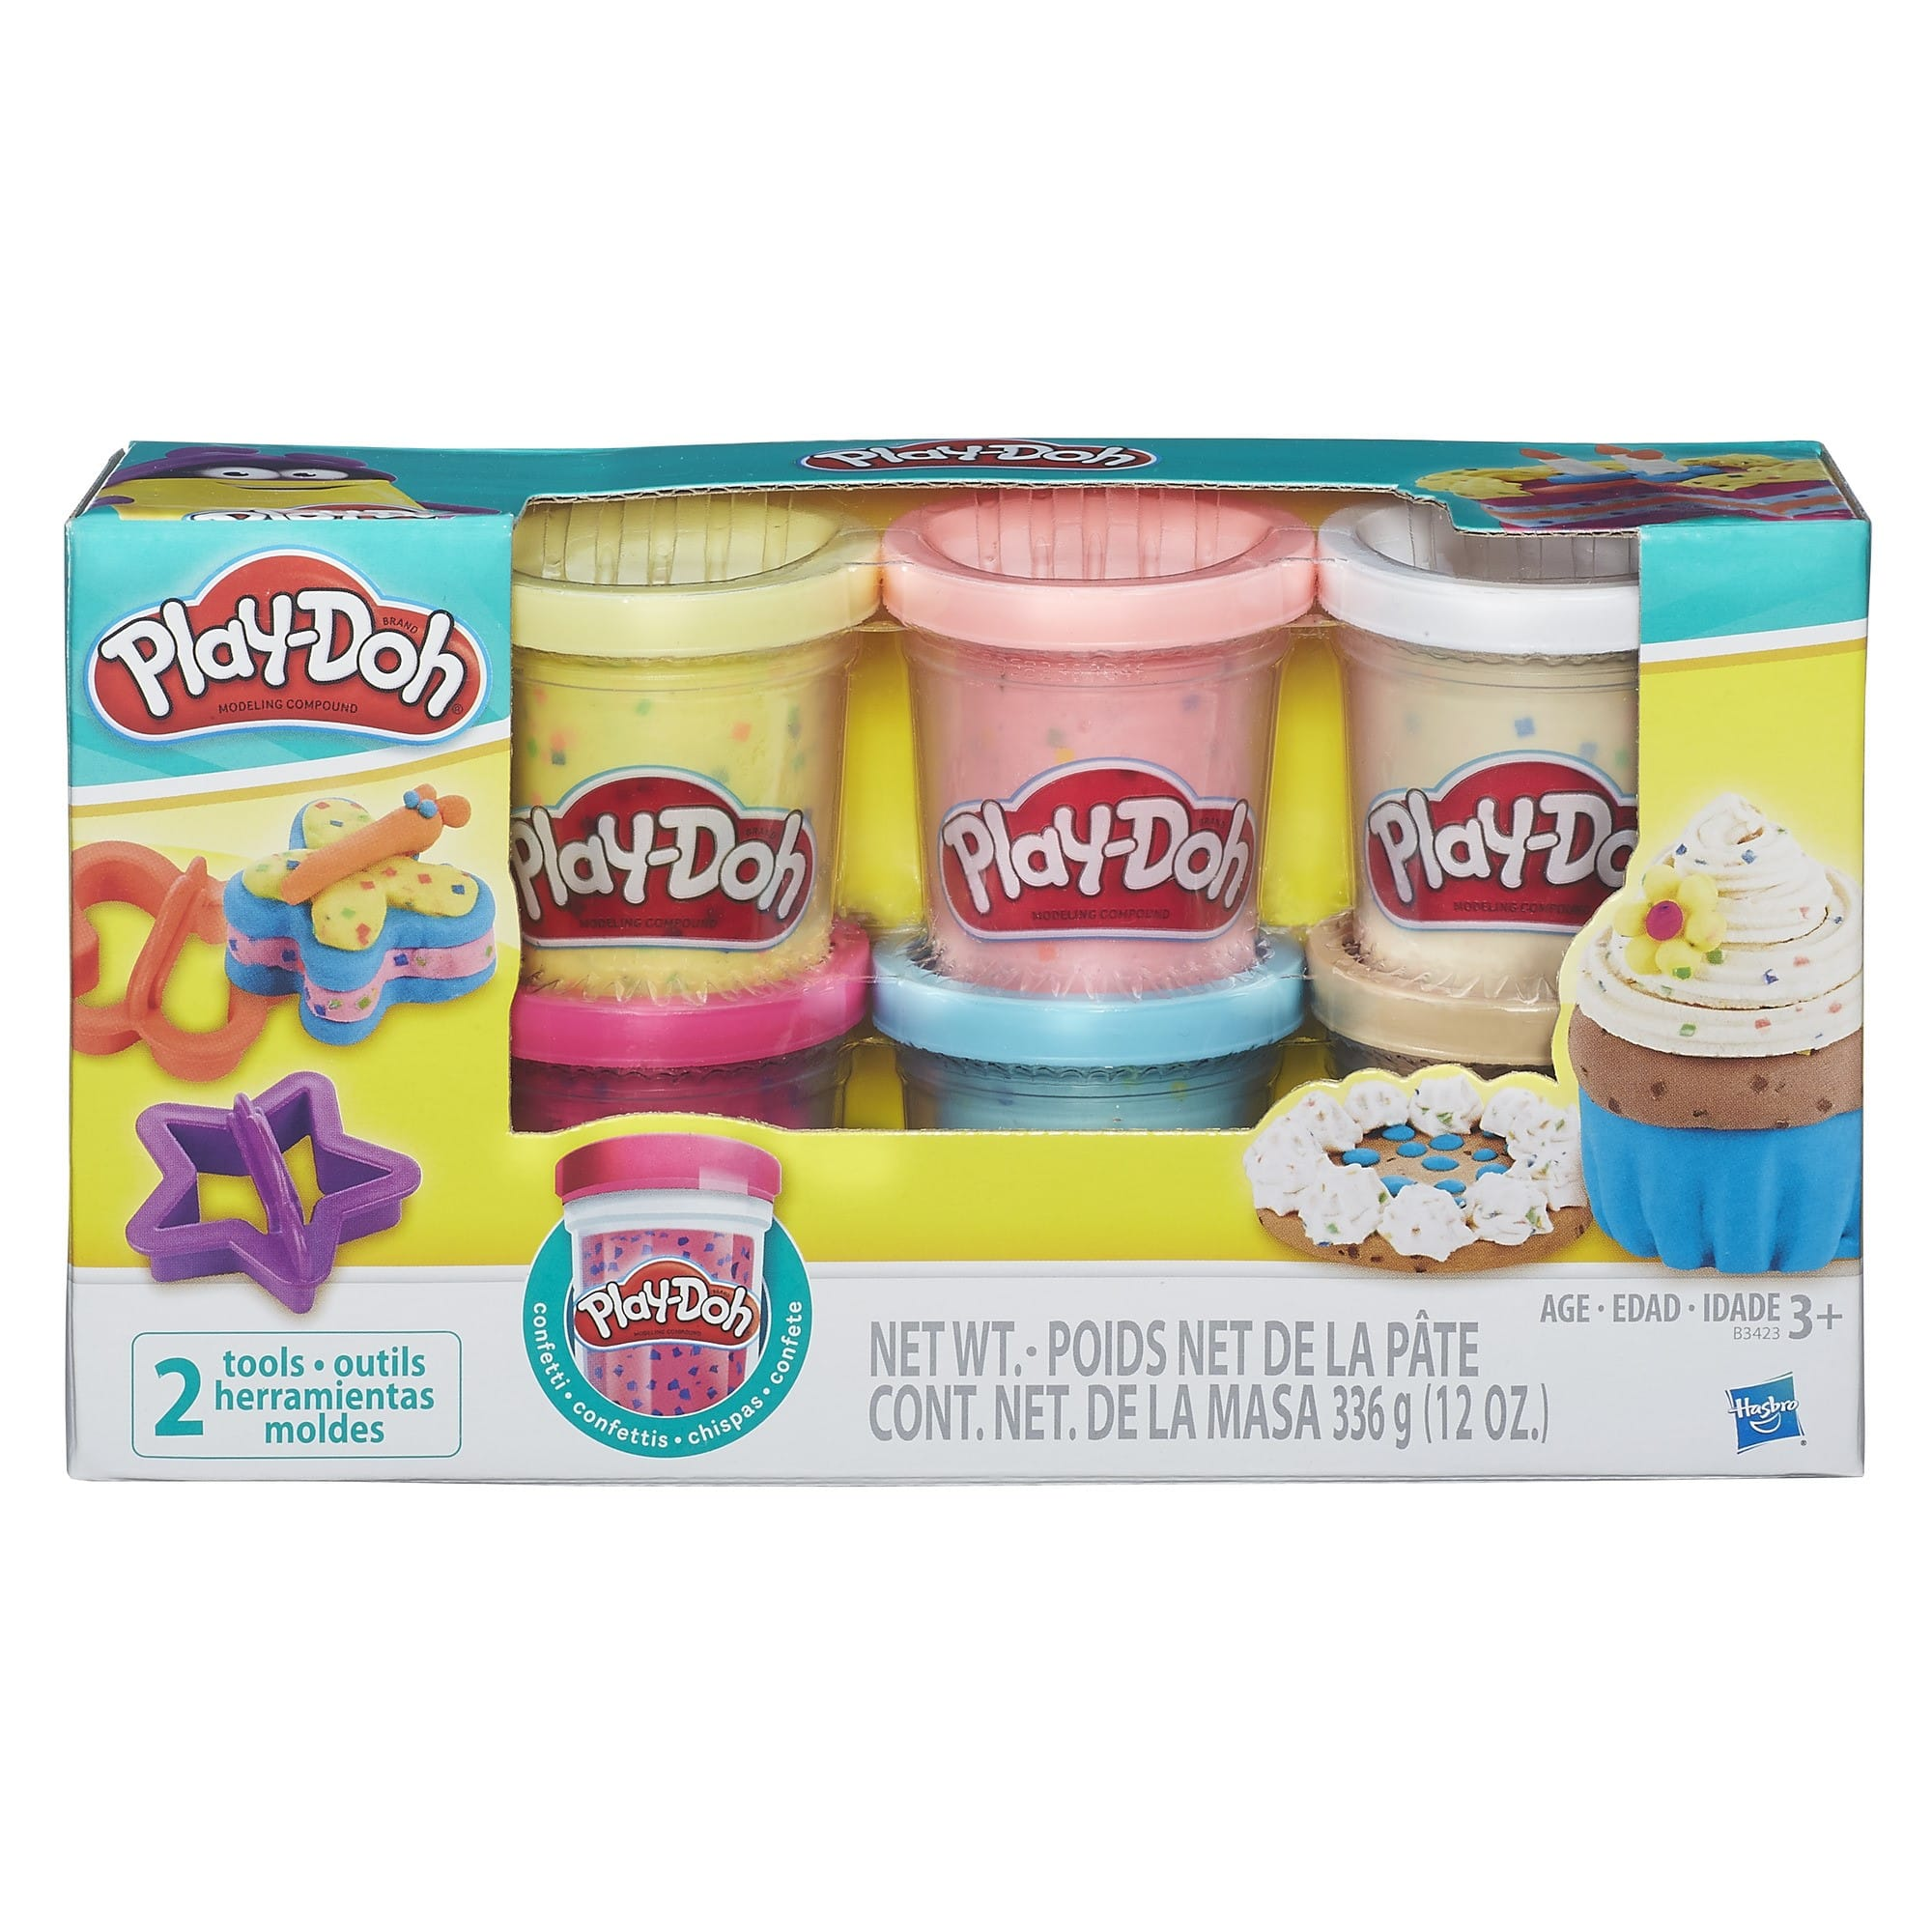 Play-Doh Confetti Compound Collection (6 Cans + 2 Cutters) $4.50 + Free Shipping w/ Prime or $25+